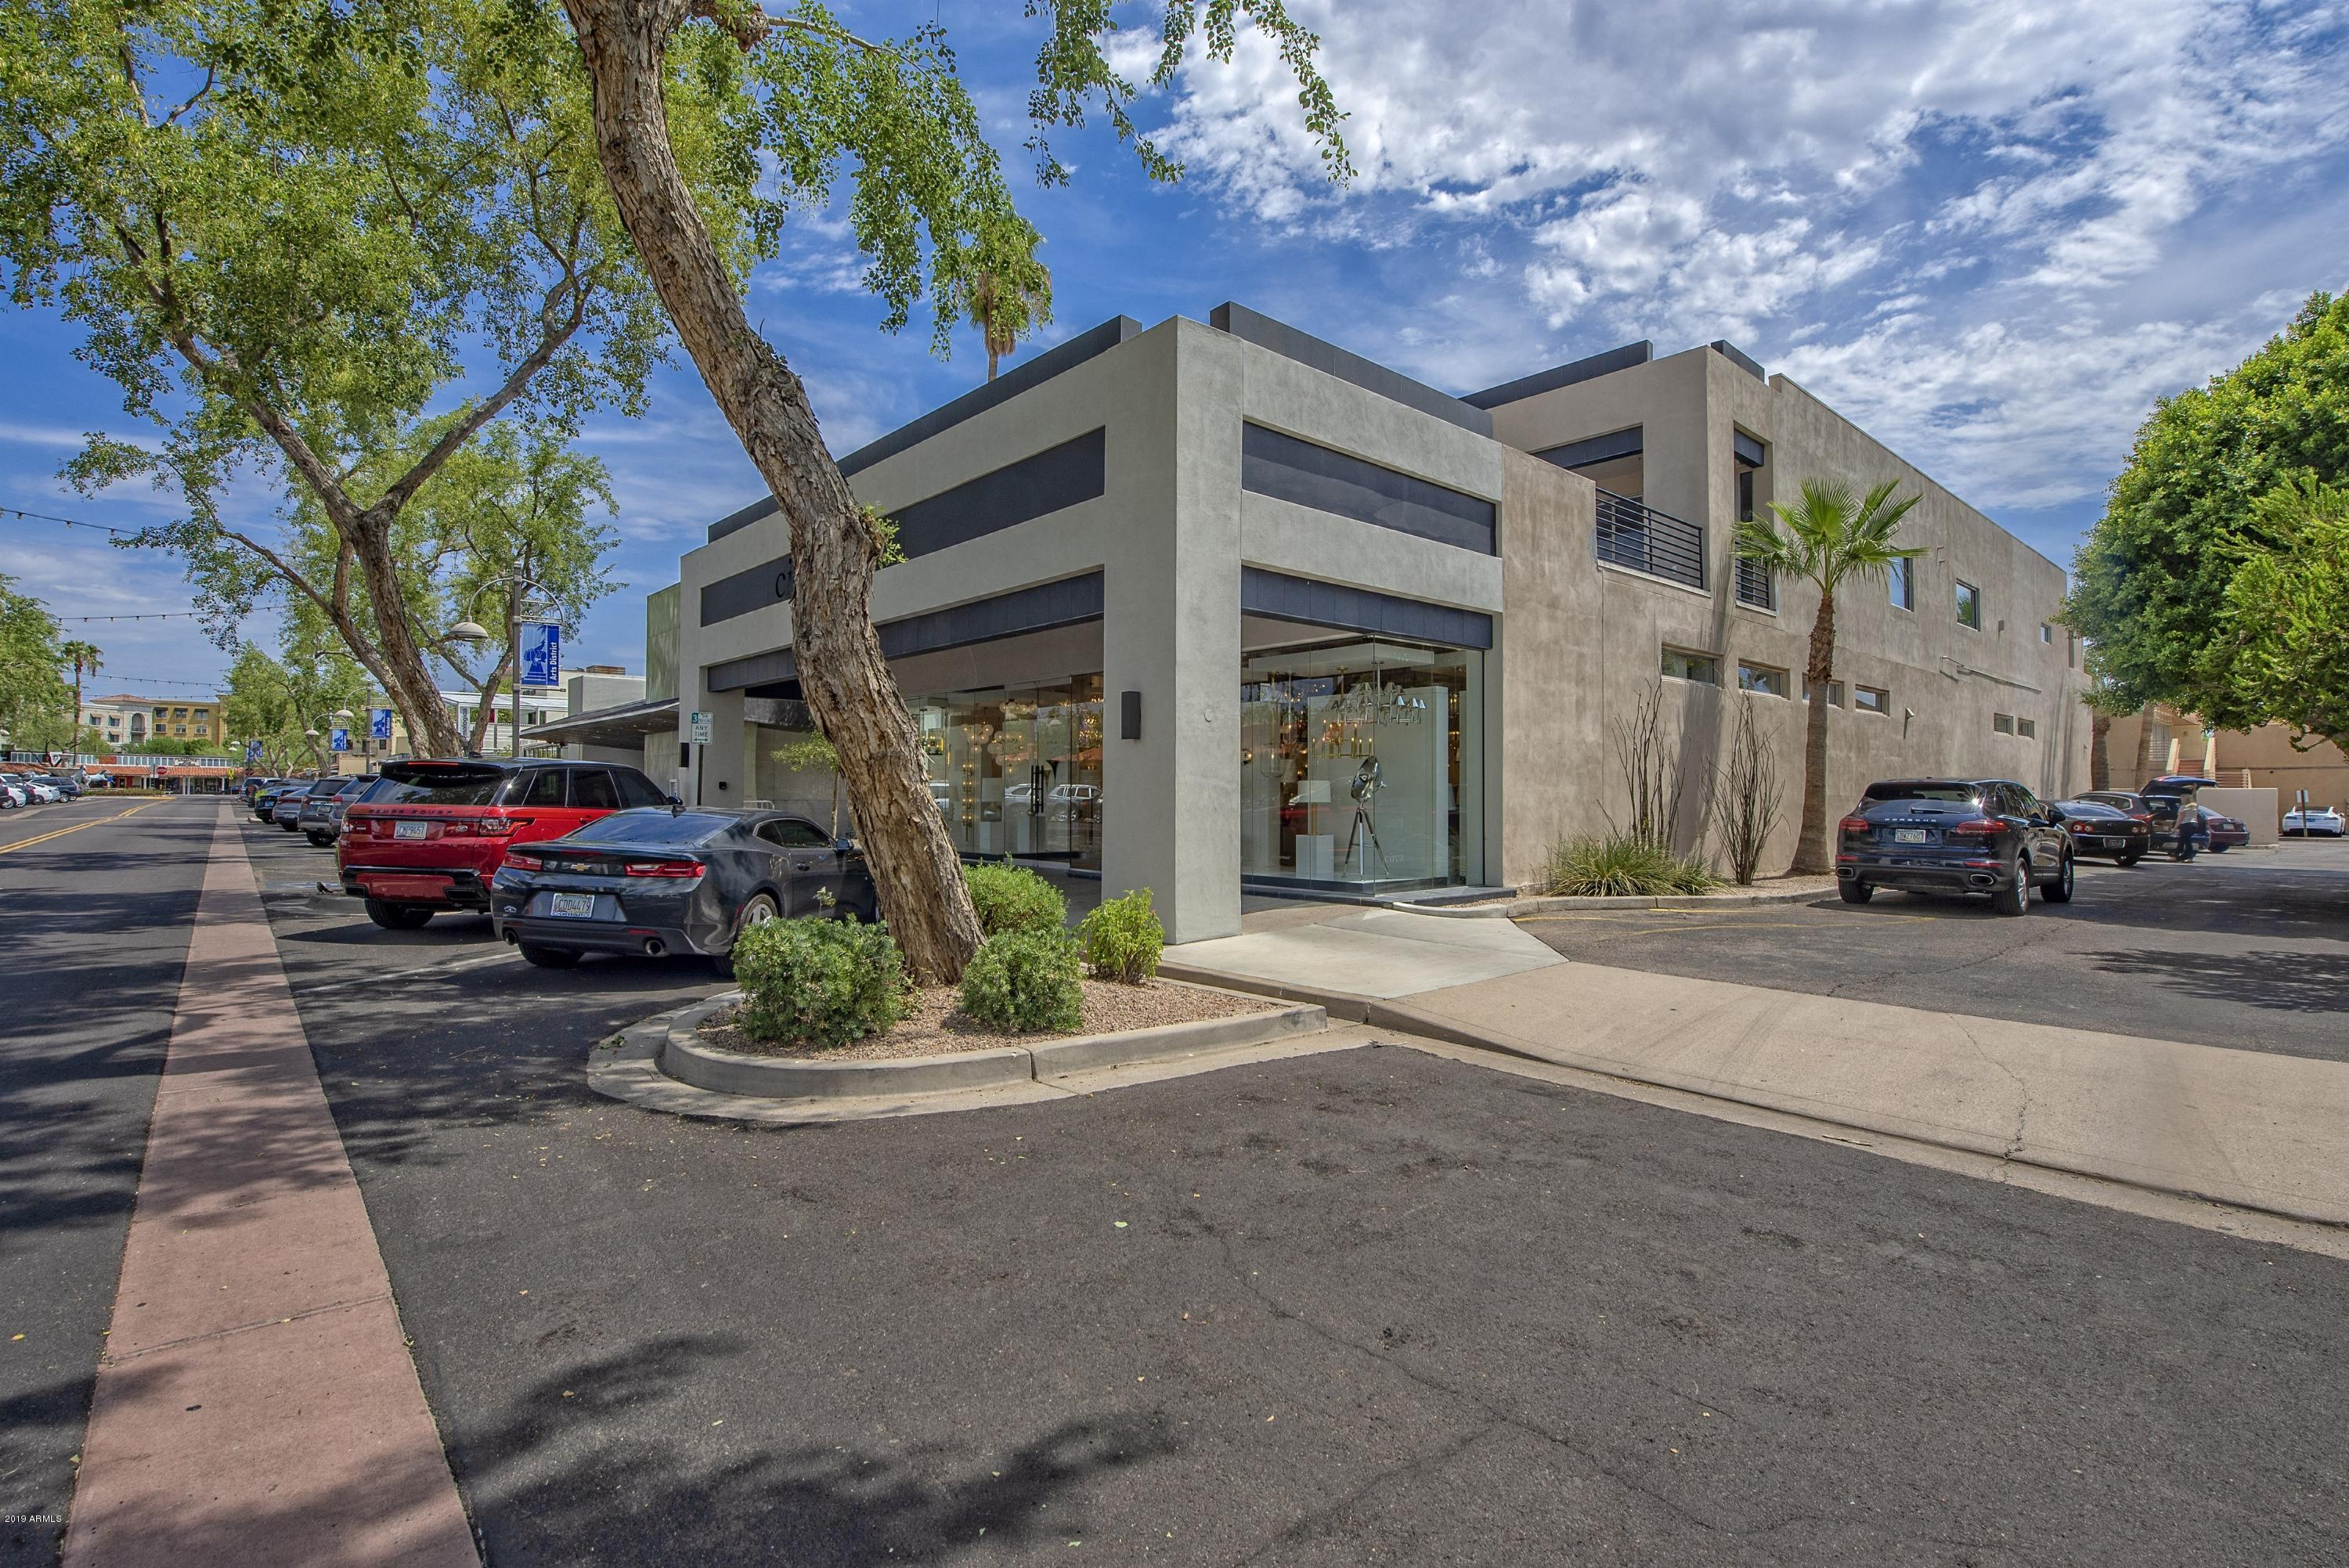 4201 N MARSHALL Way, Scottsdale, AZ 85251, 2 Bedrooms Bedrooms, ,Residential Lease,For Rent,4201 N MARSHALL Way,6310610